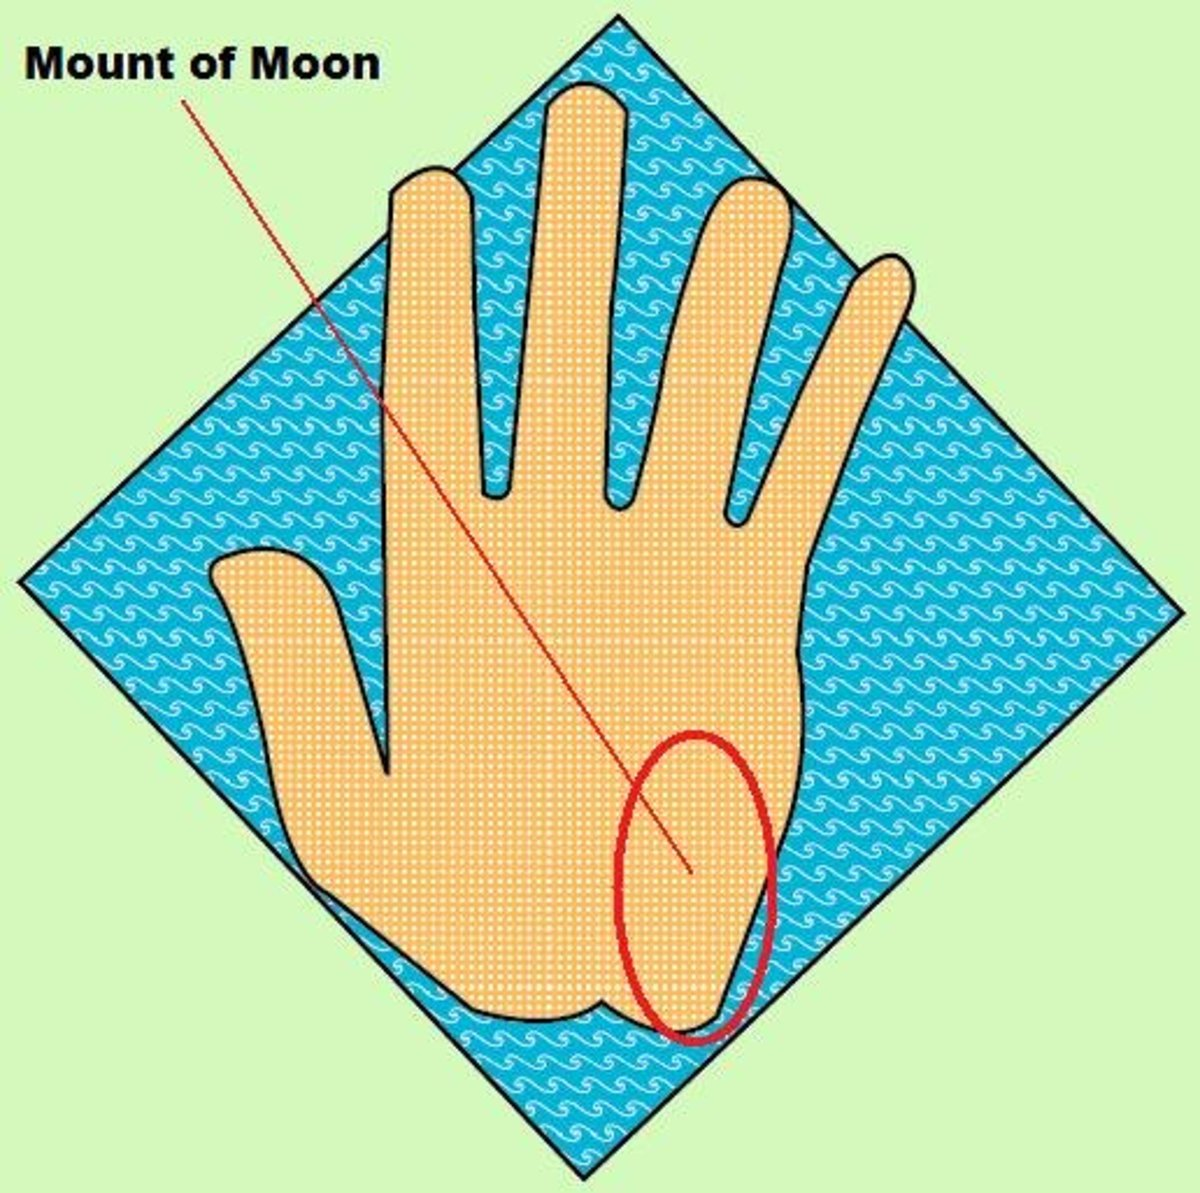 Mount of Luna in palmistry